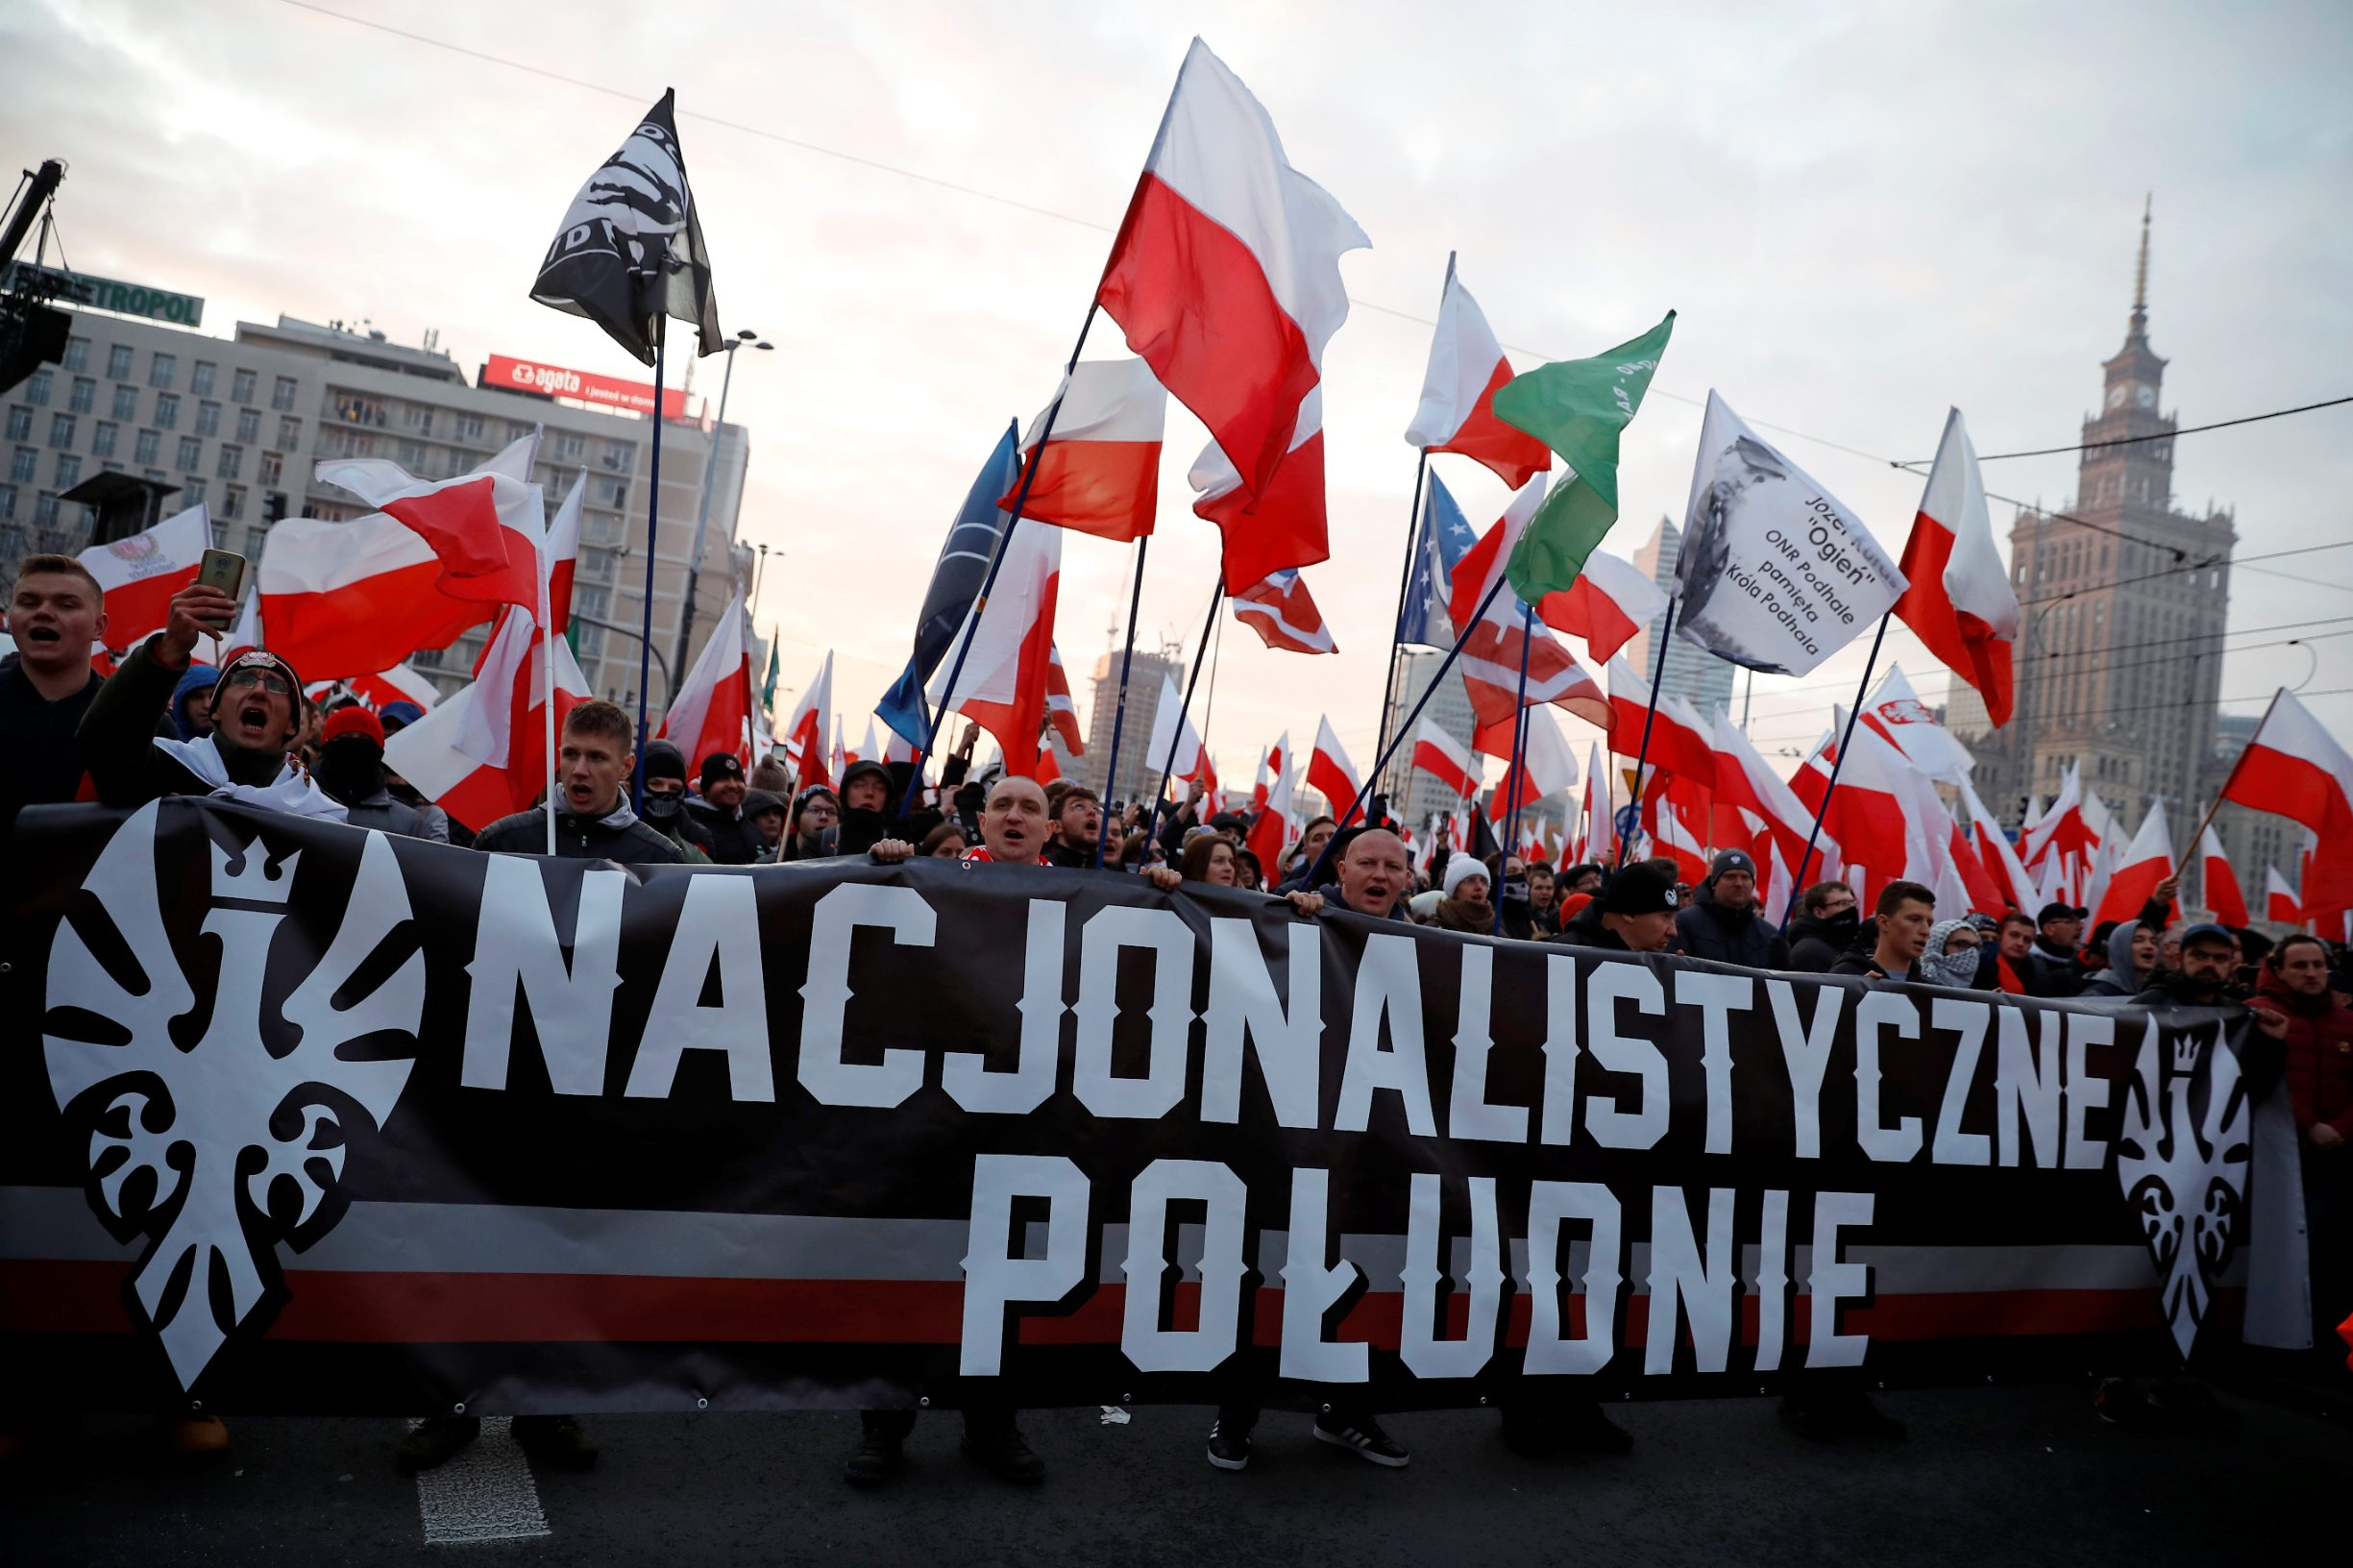 2019-11-11T144937Z_1374562224_RC229D951JTC_RTRMADP_3_POLAND-INDEPENDENCE-MARCH